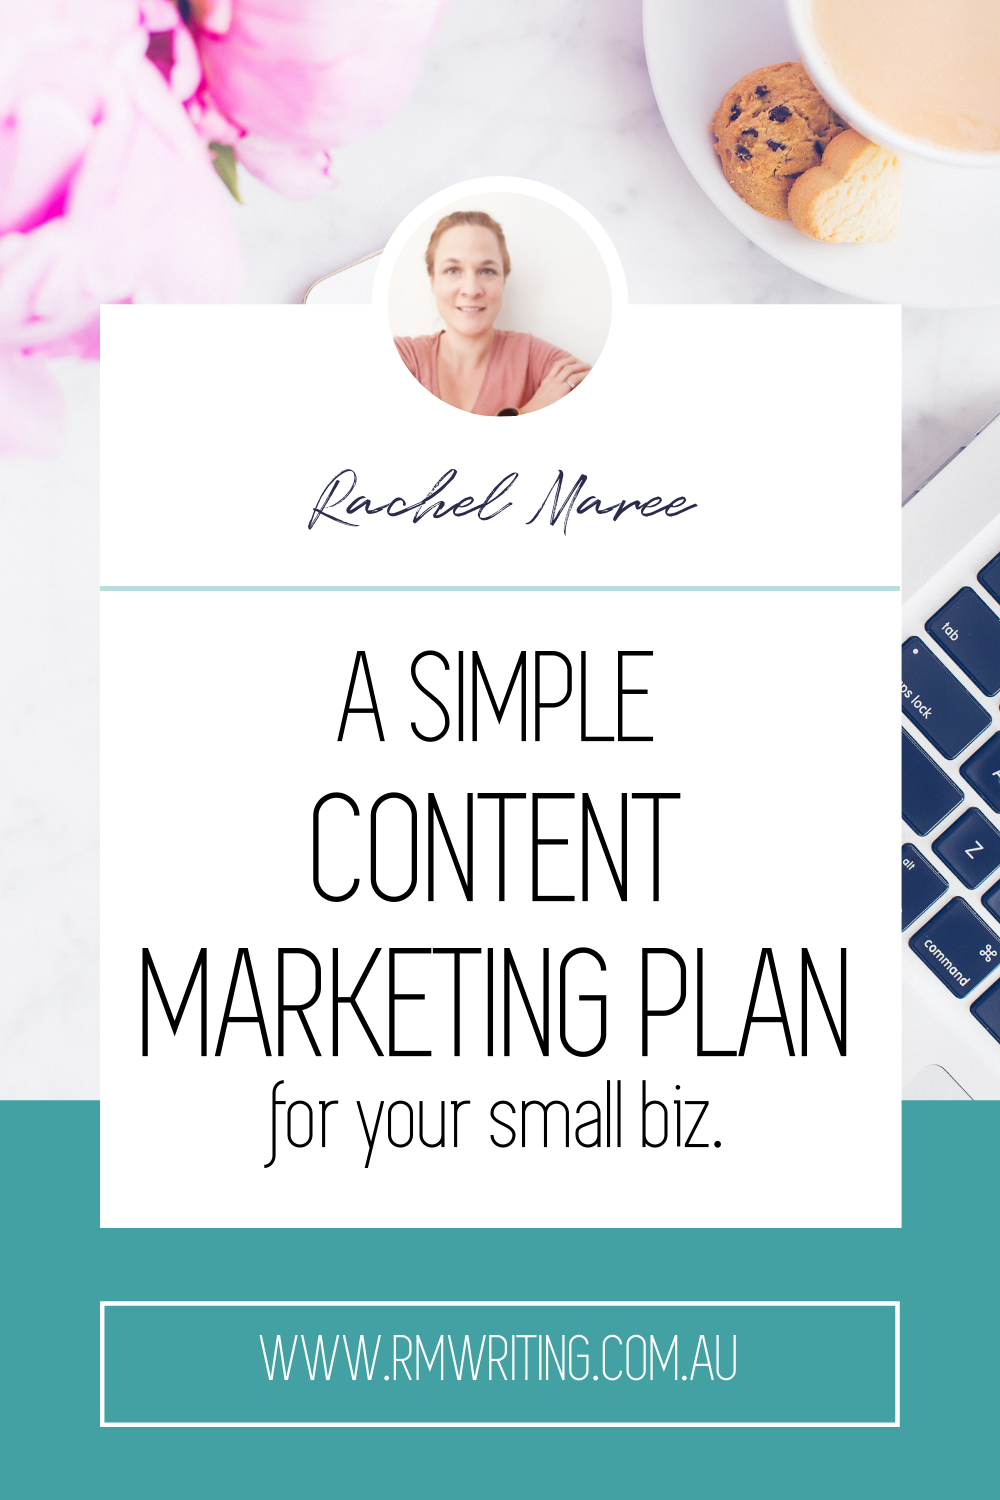 Get Started With This Simple Content Marketing Plan For Your Small Biz.